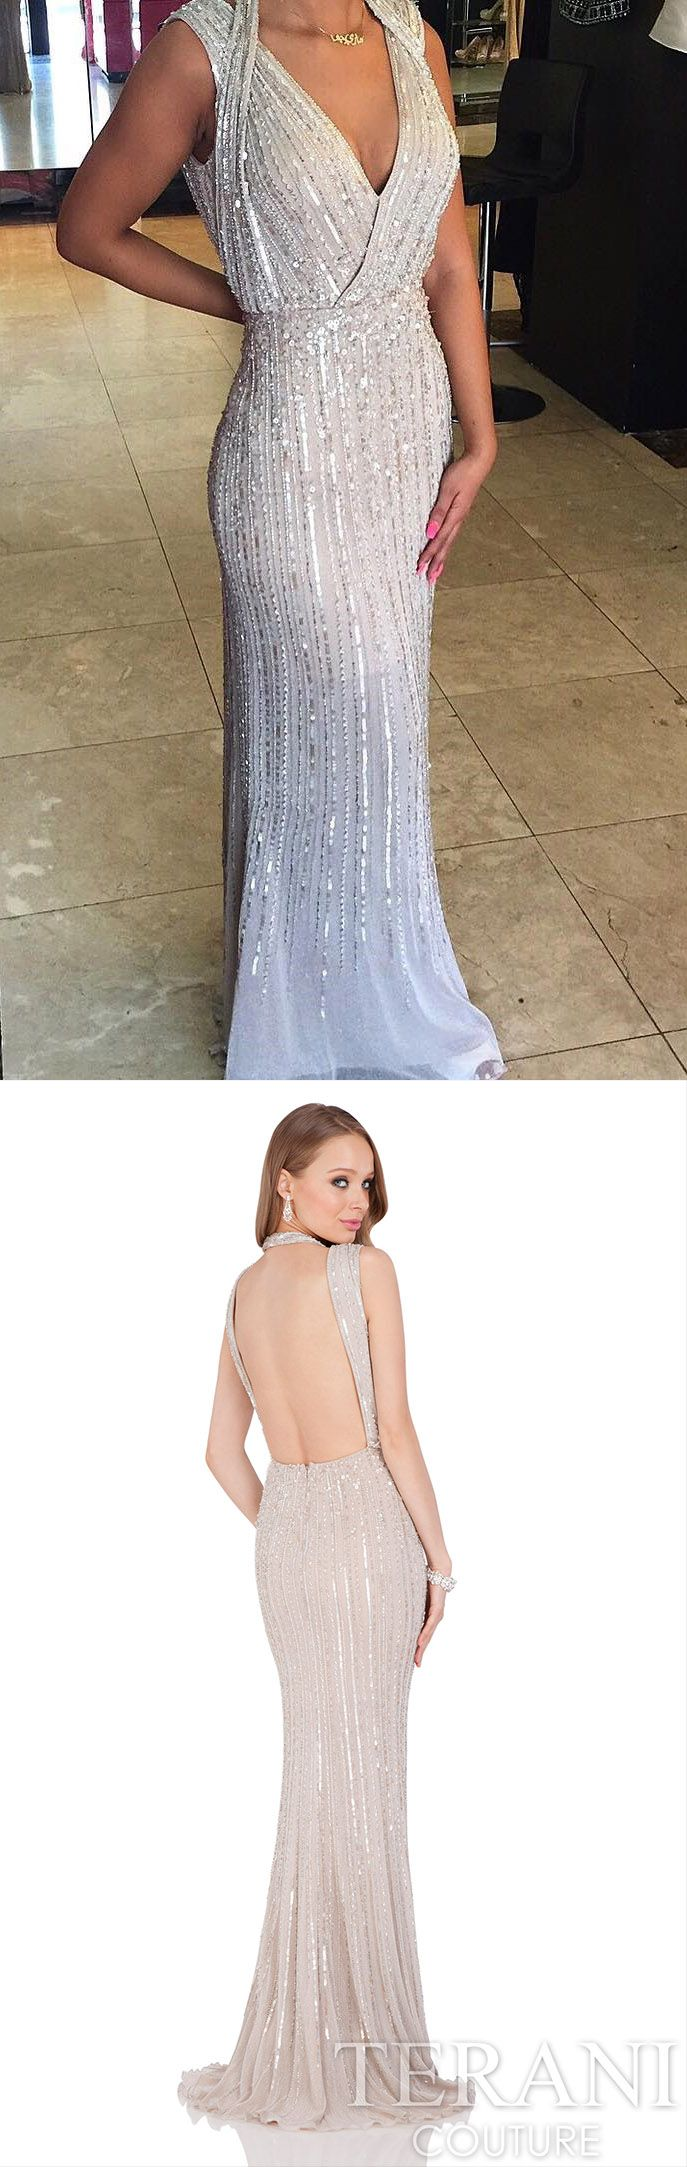 63 best Terani Couture images on Pinterest | Party wear dresses ...